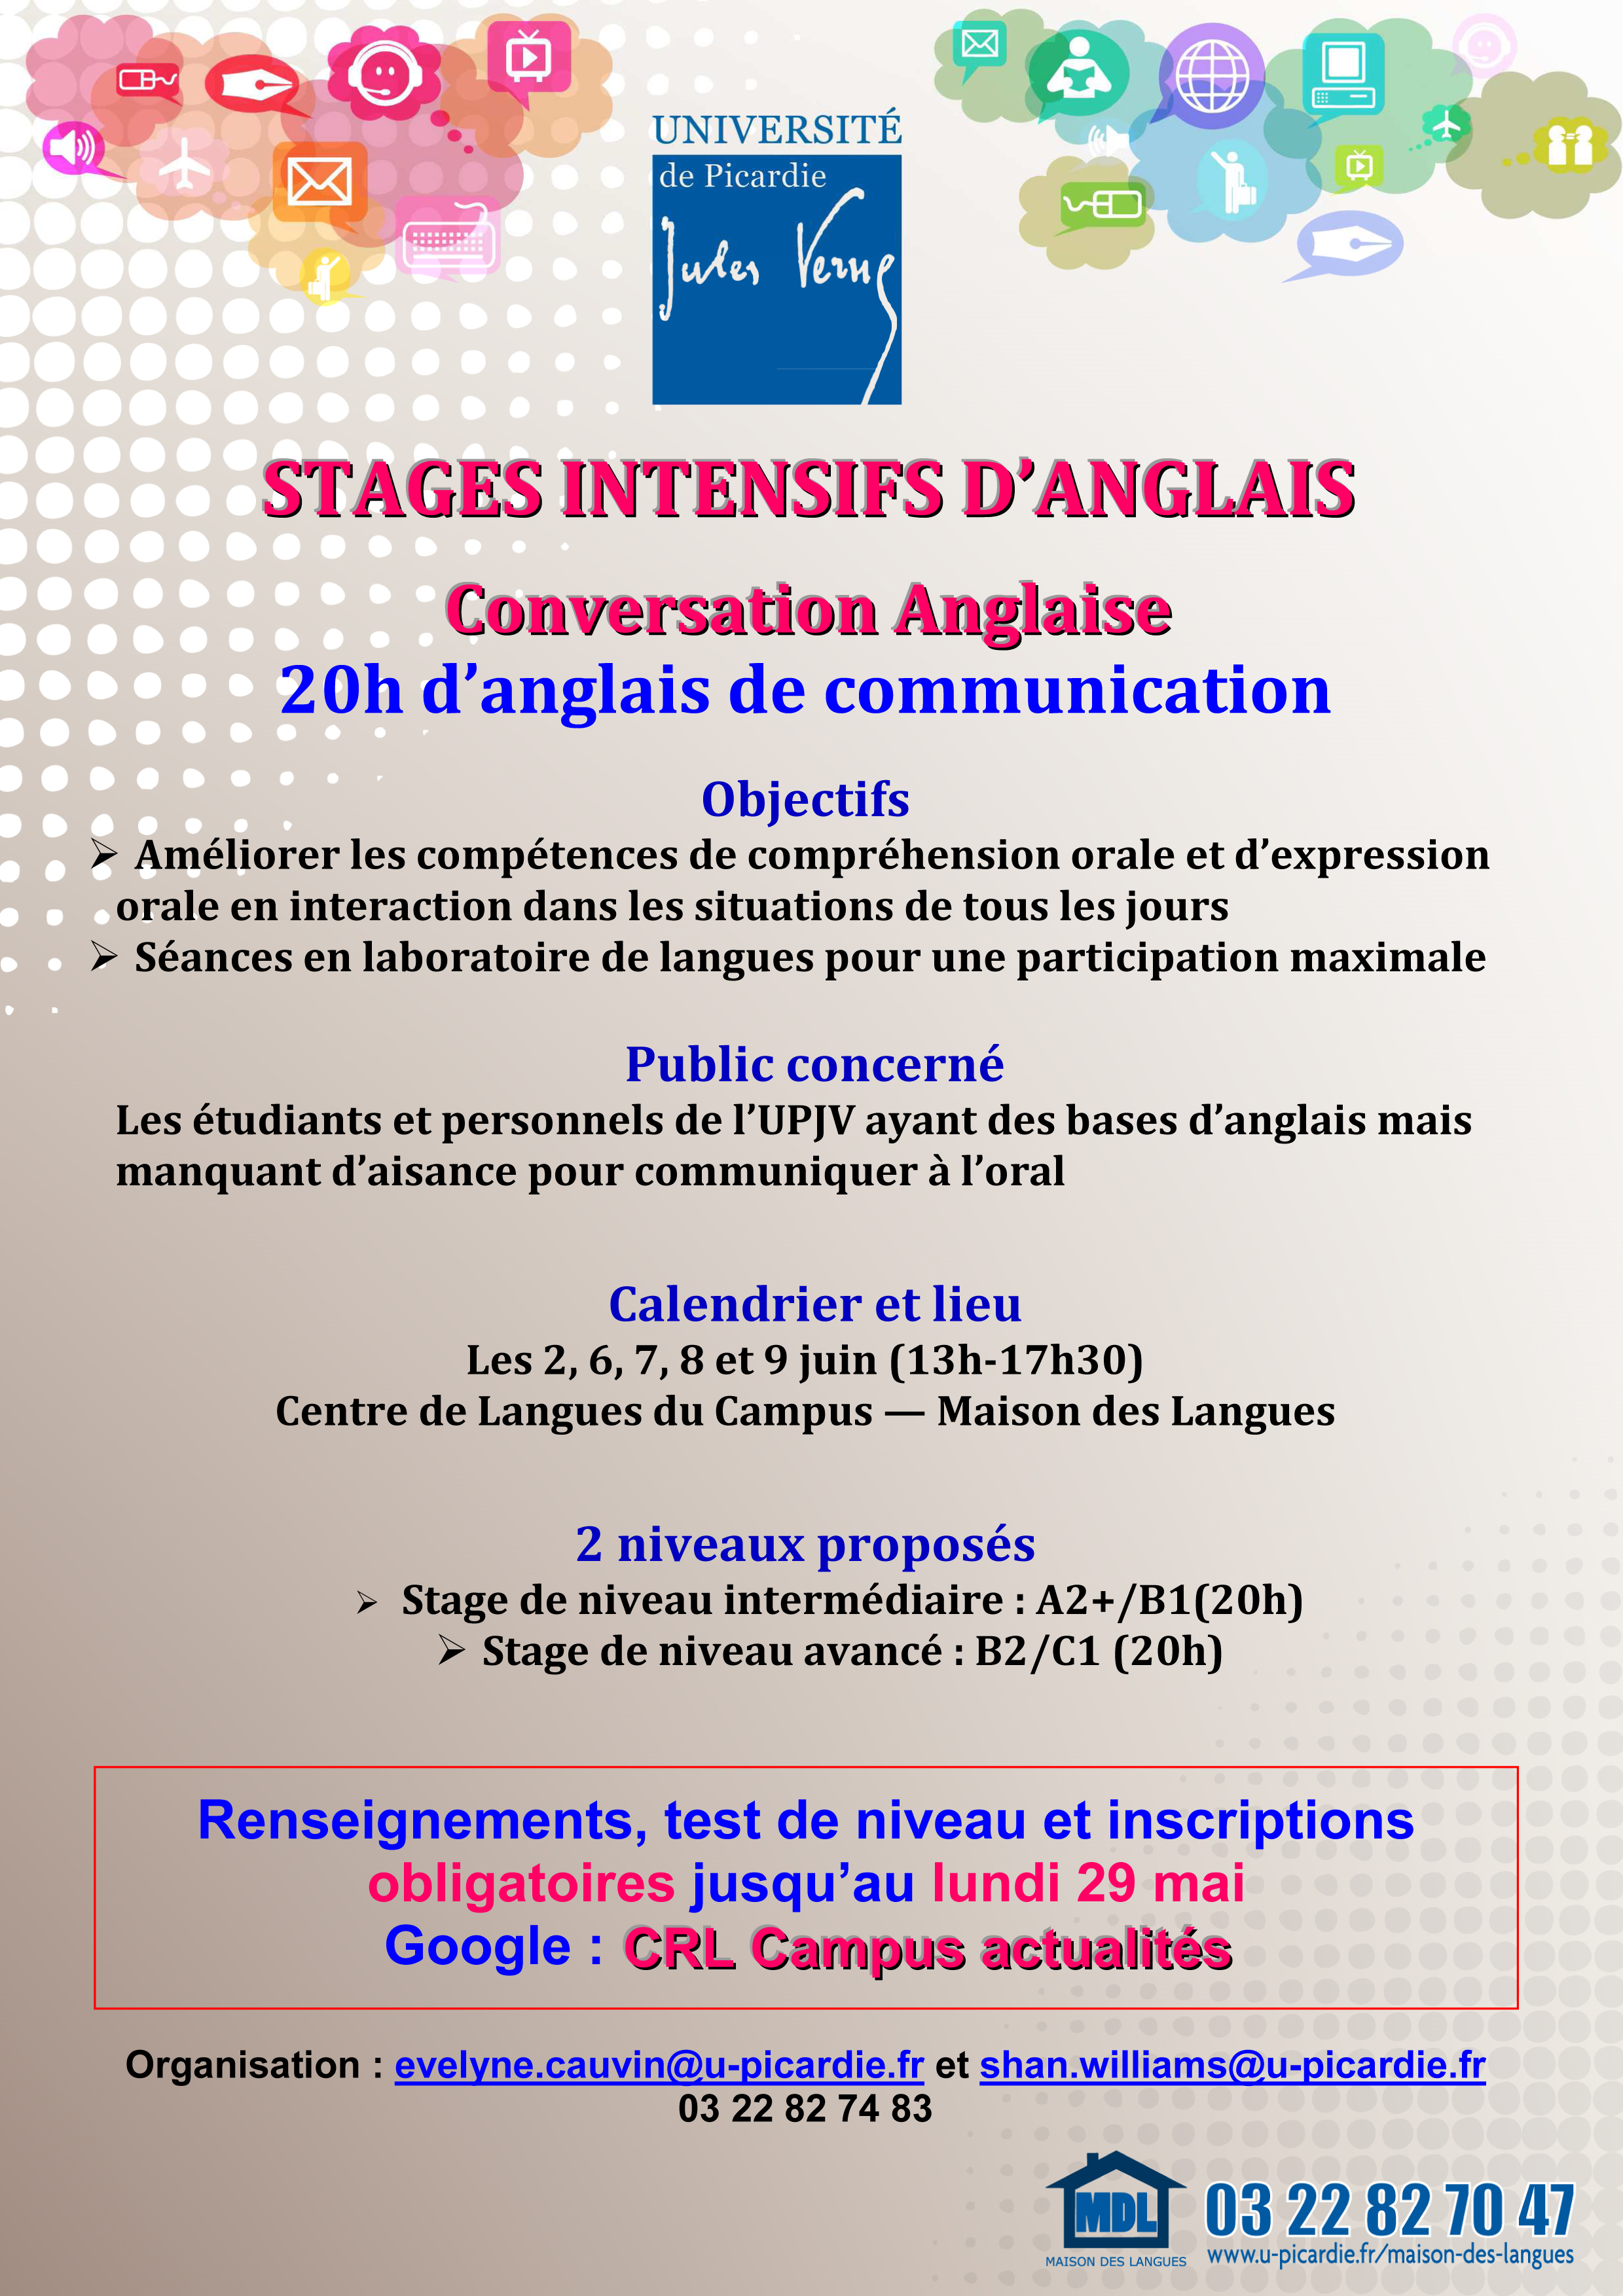 stages anglais intensifs juin 2017.png